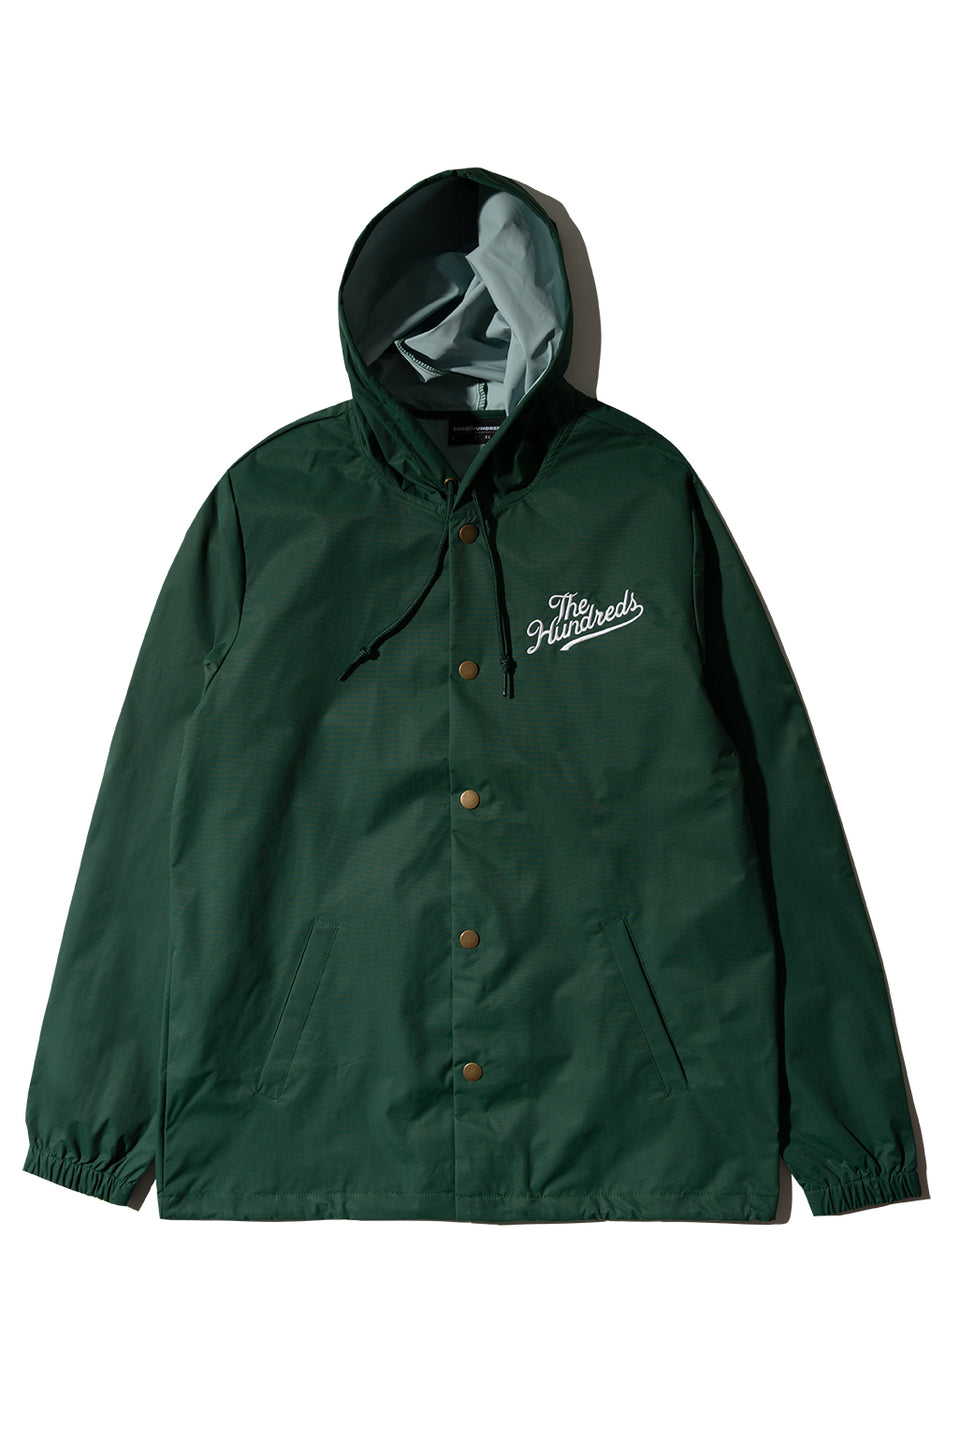 Forever Slant Hooded Coach's Jacket